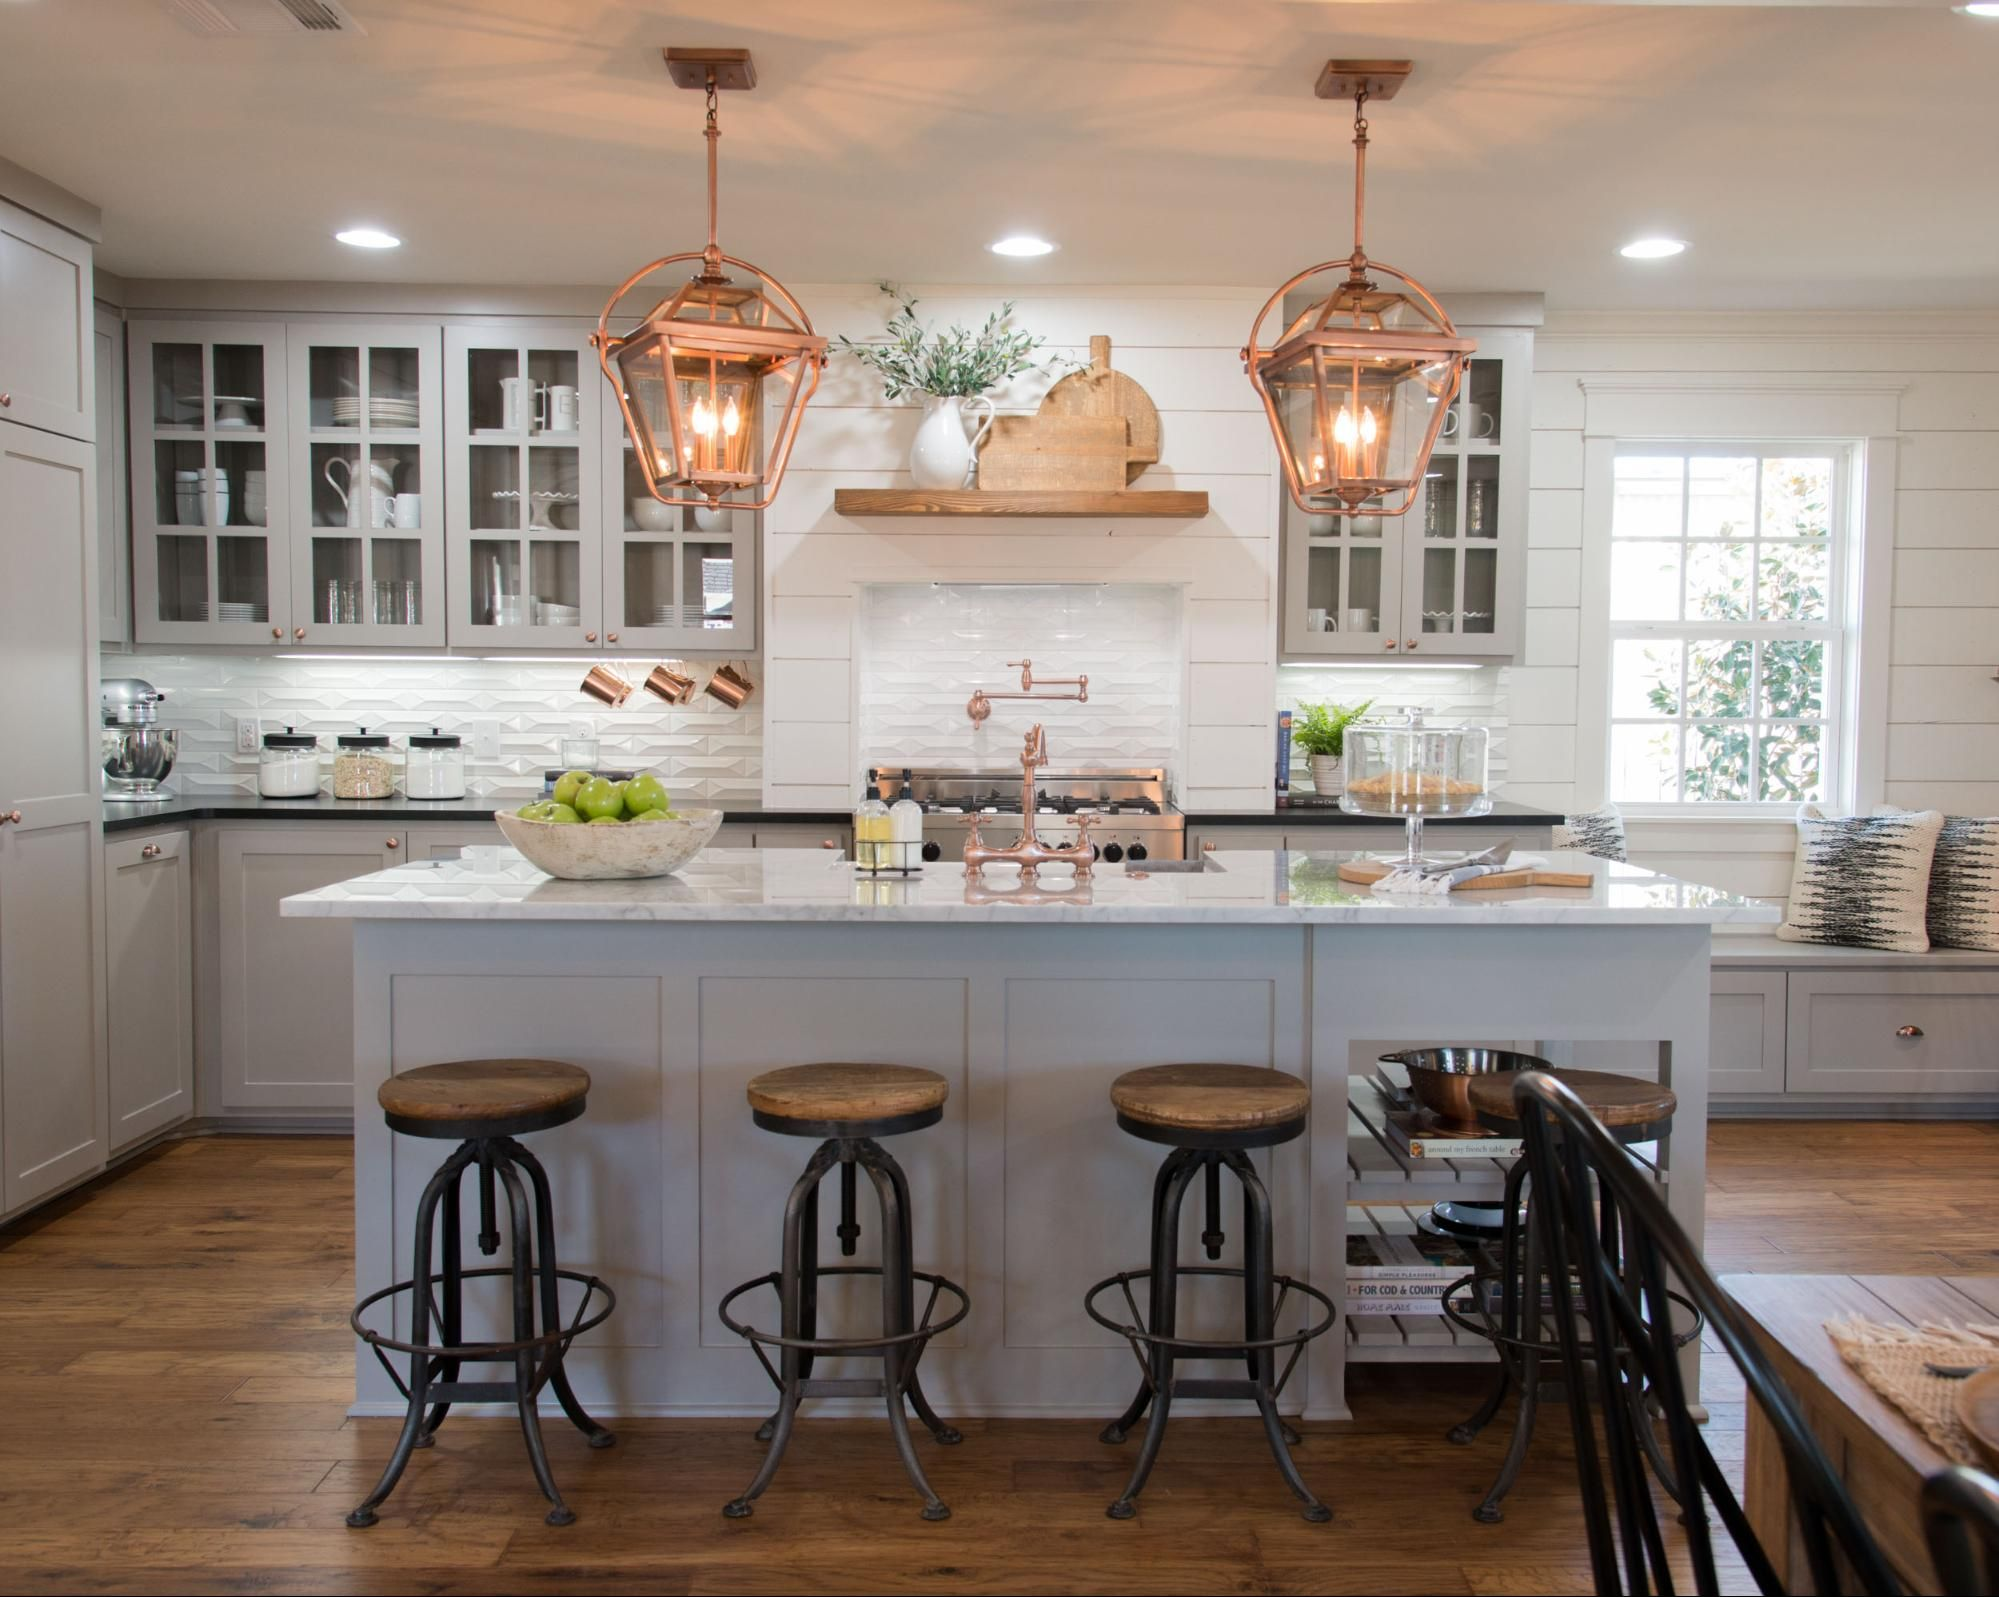 Fixer Upper Copper Light Fixture Gray Kitchens And Magnolia - Copper kitchen lighting fixtures